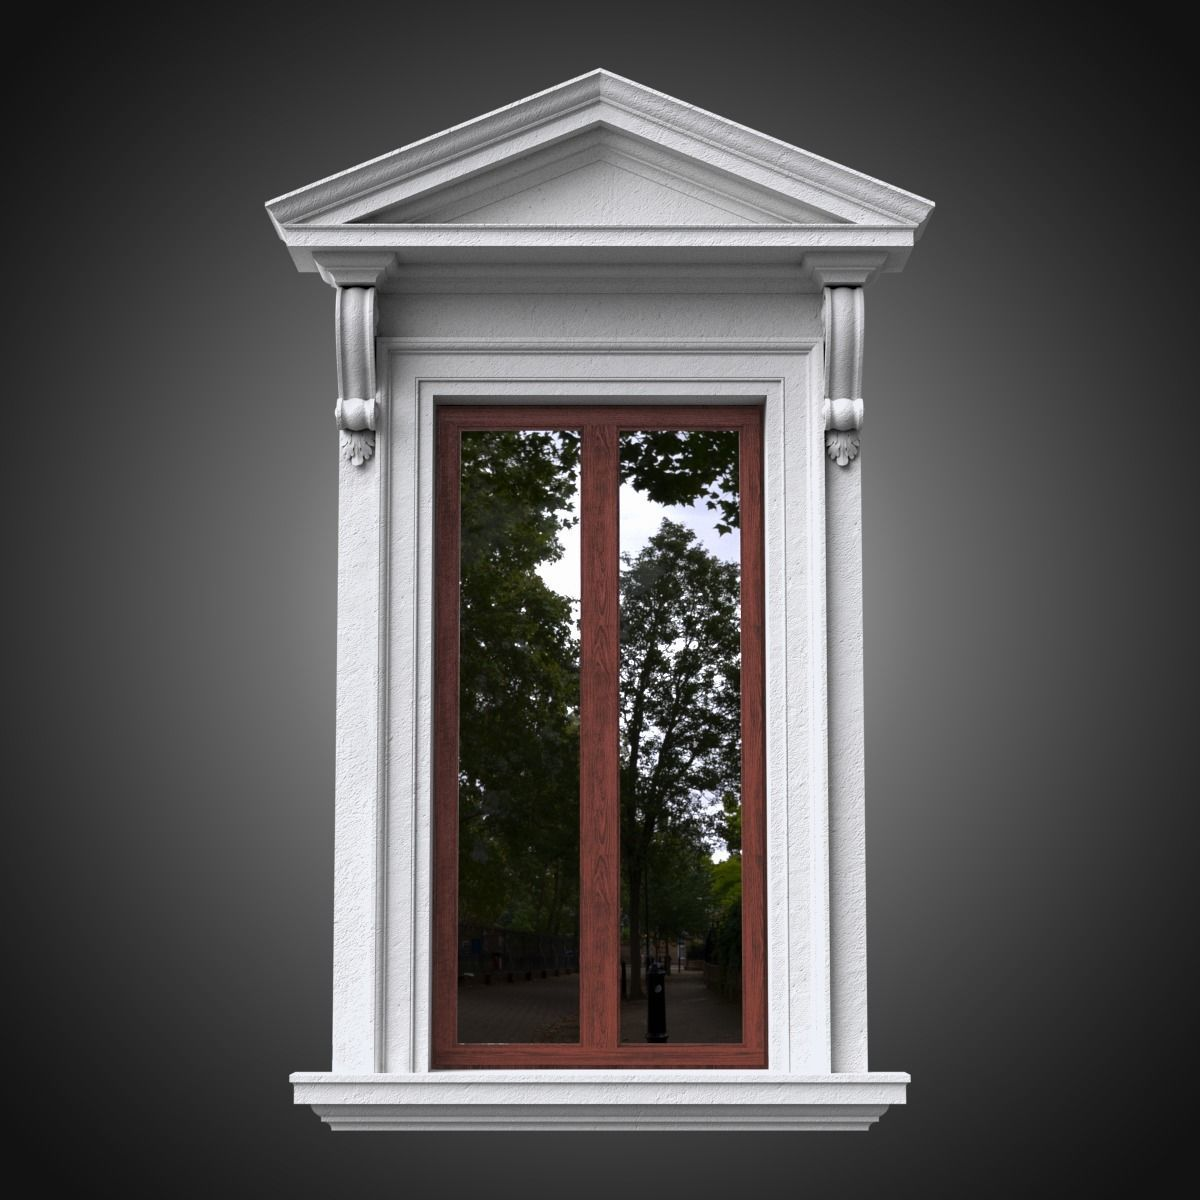 Classical window with pointed pediment